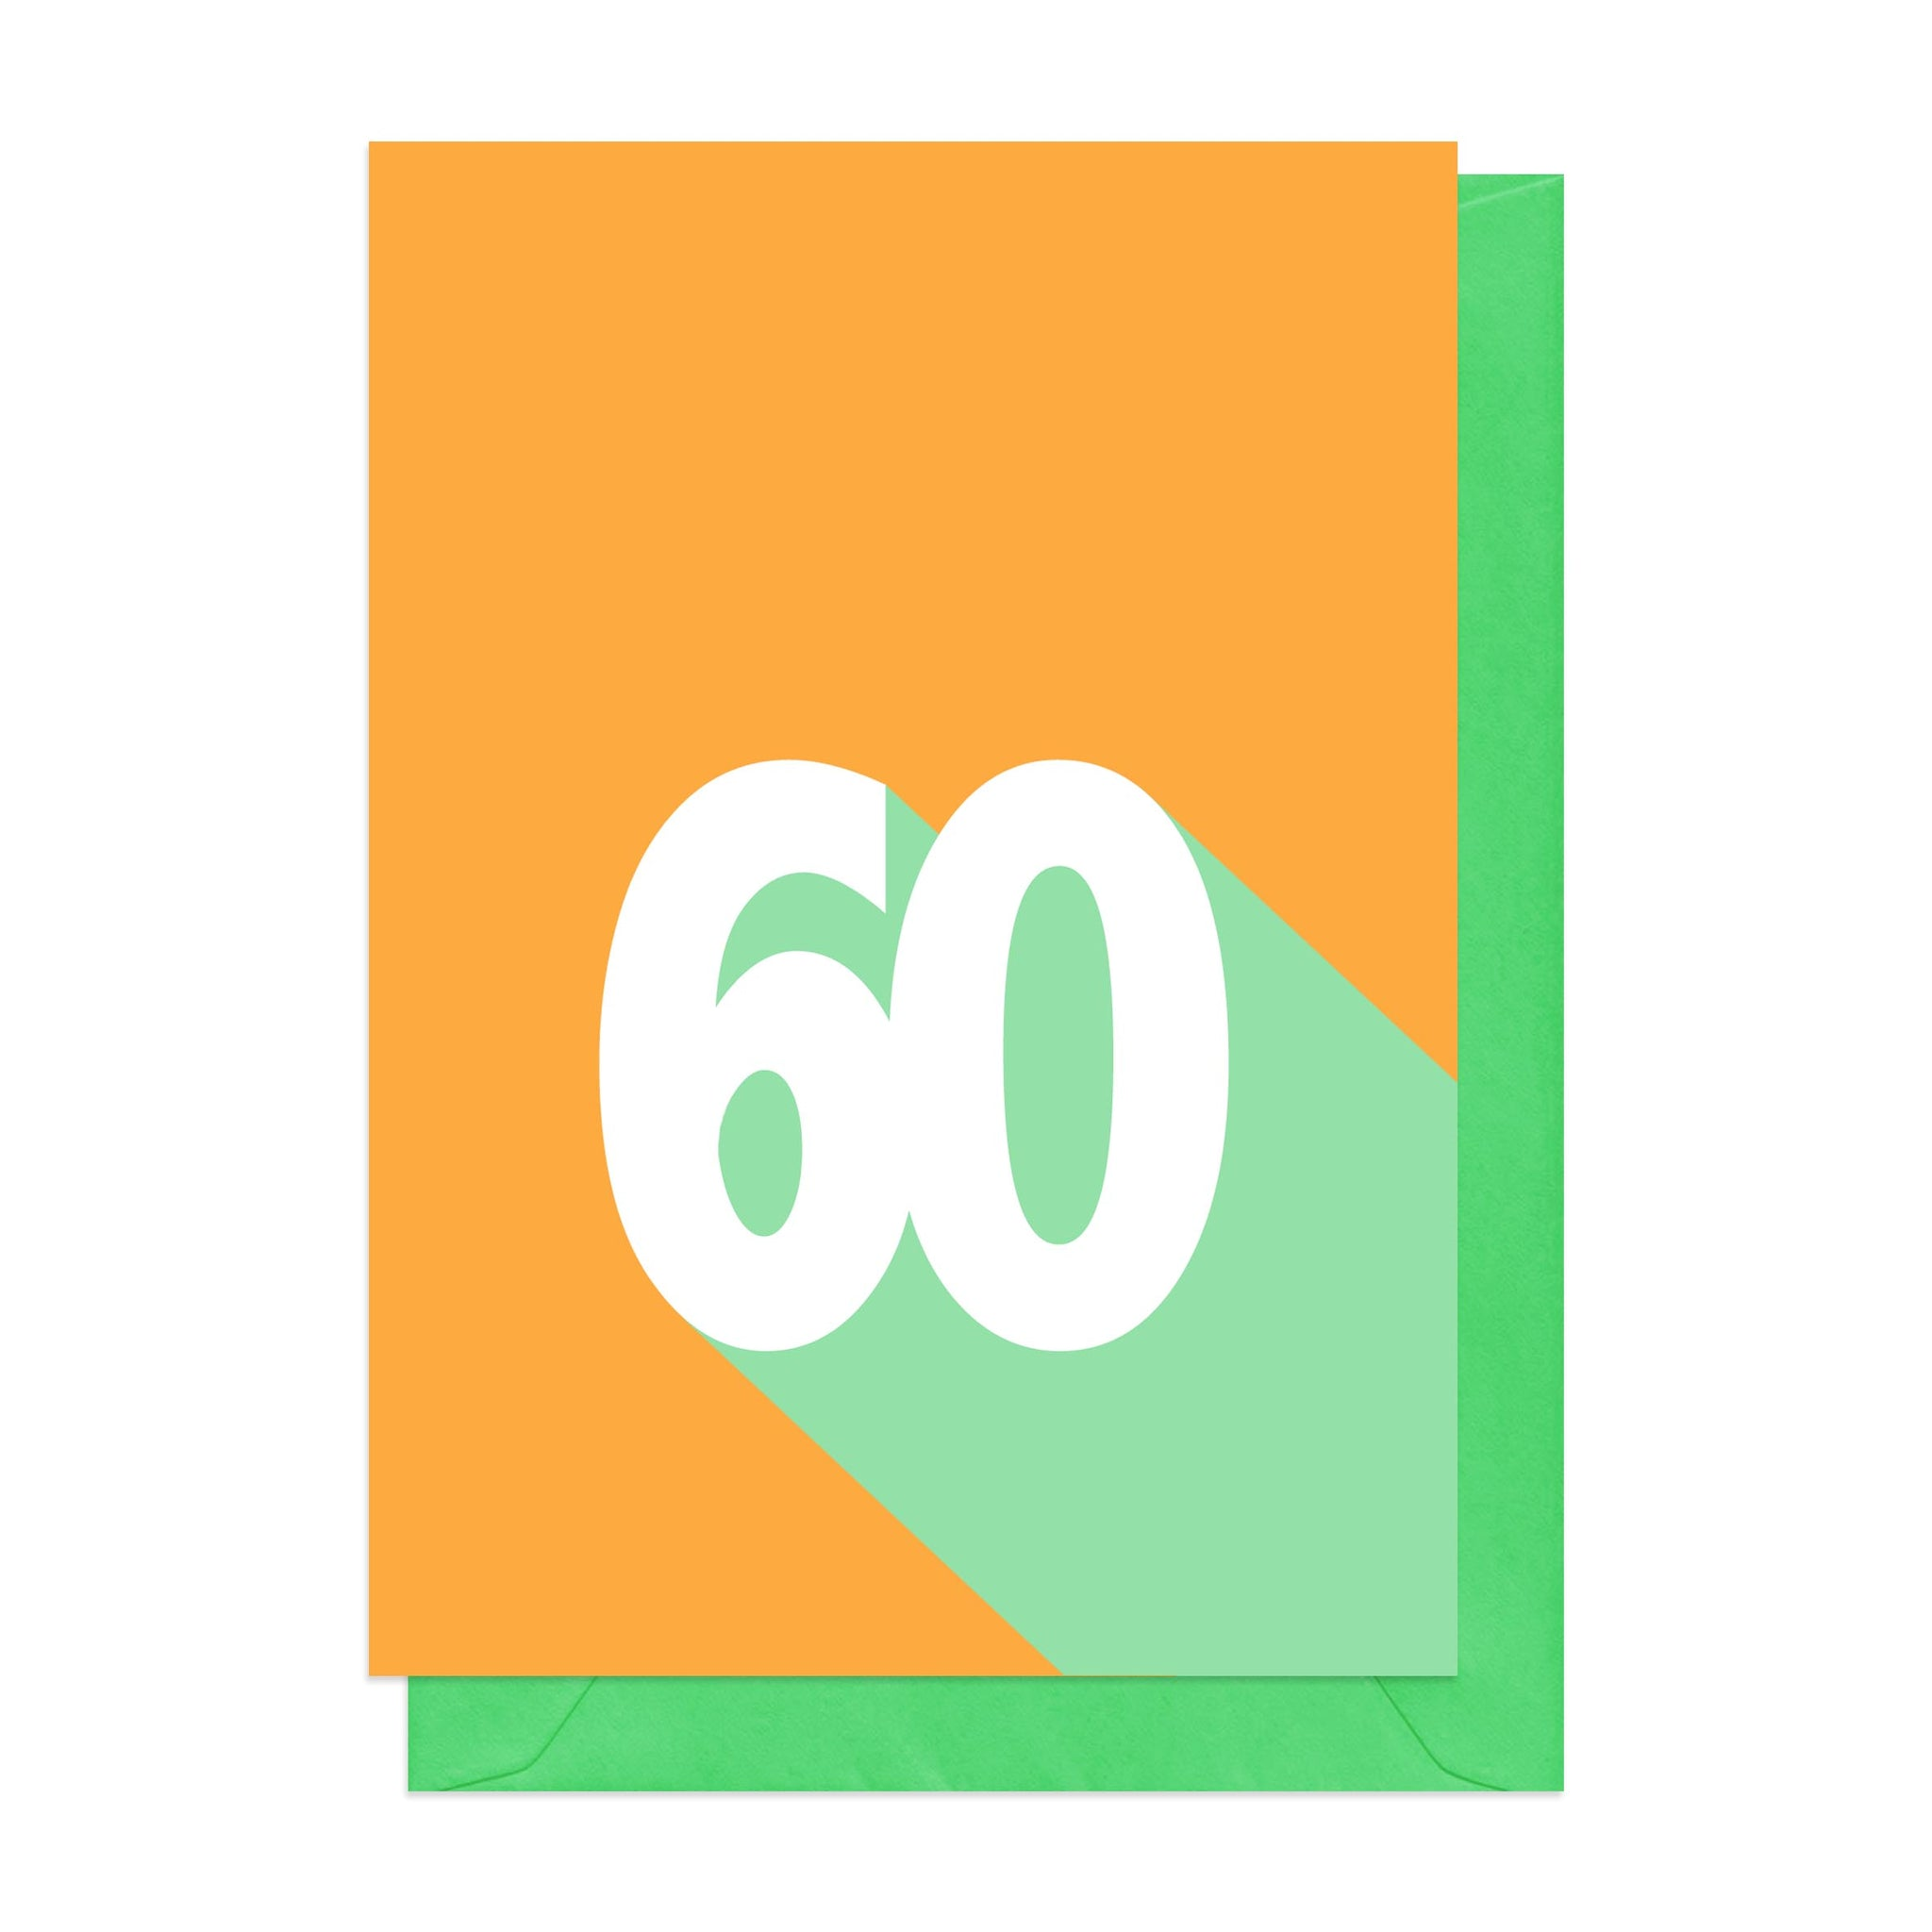 Orange and green 60th birthday card